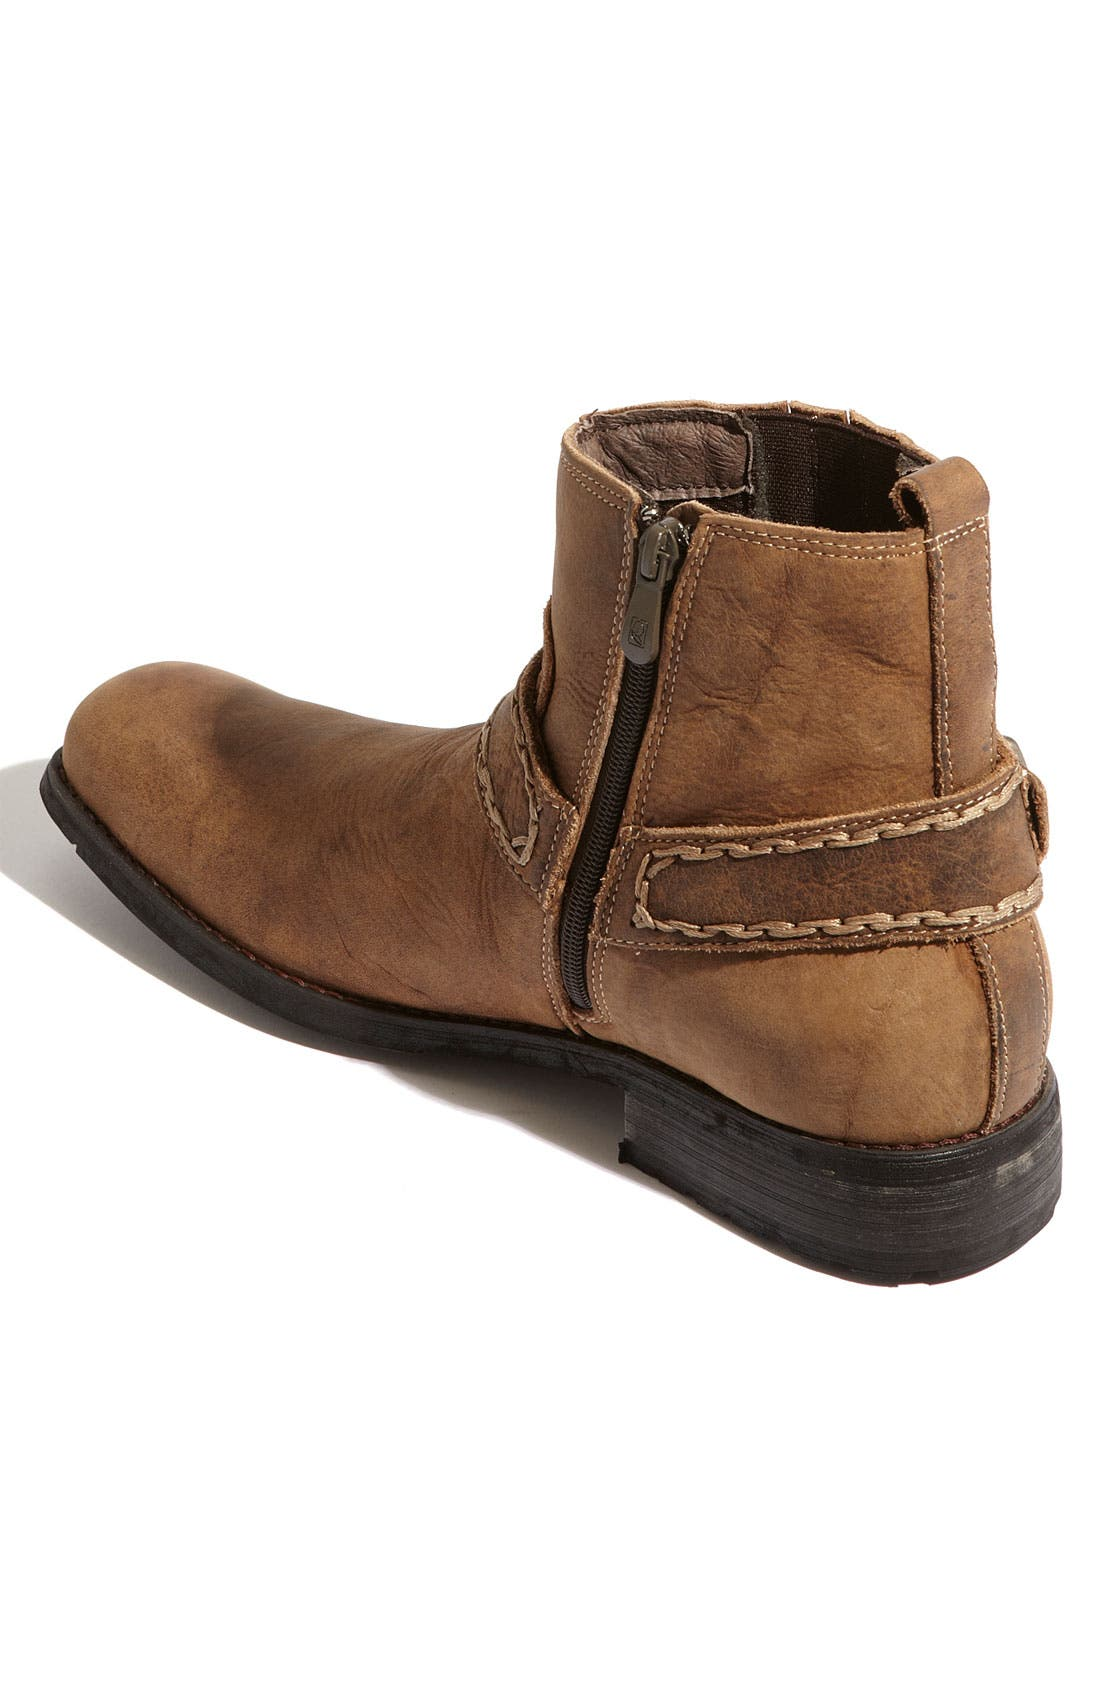 Alternate Image 2  - Bed Stu 'Innovator' Boot (Online Only) (Men)